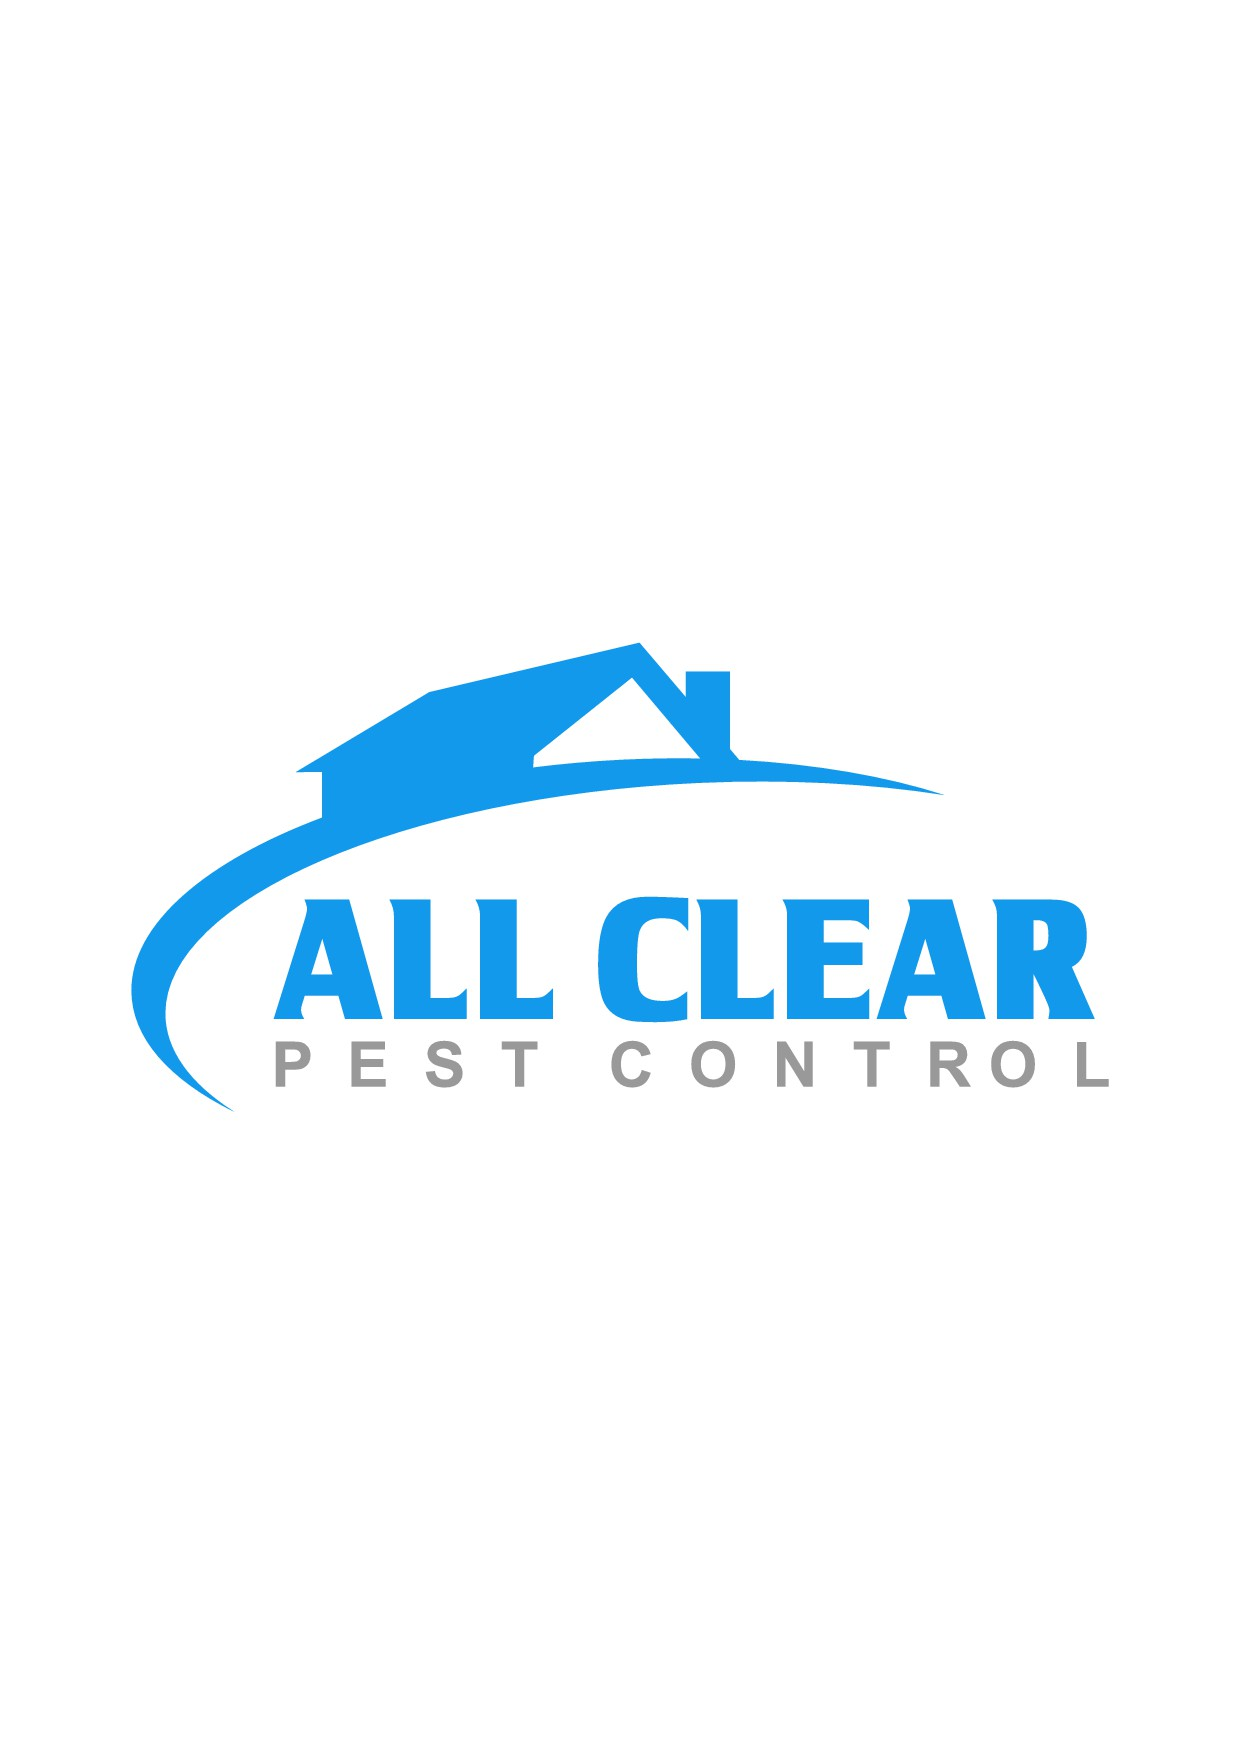 ALL CLEAR PEST CONTROL needs an amazing new logo!!!